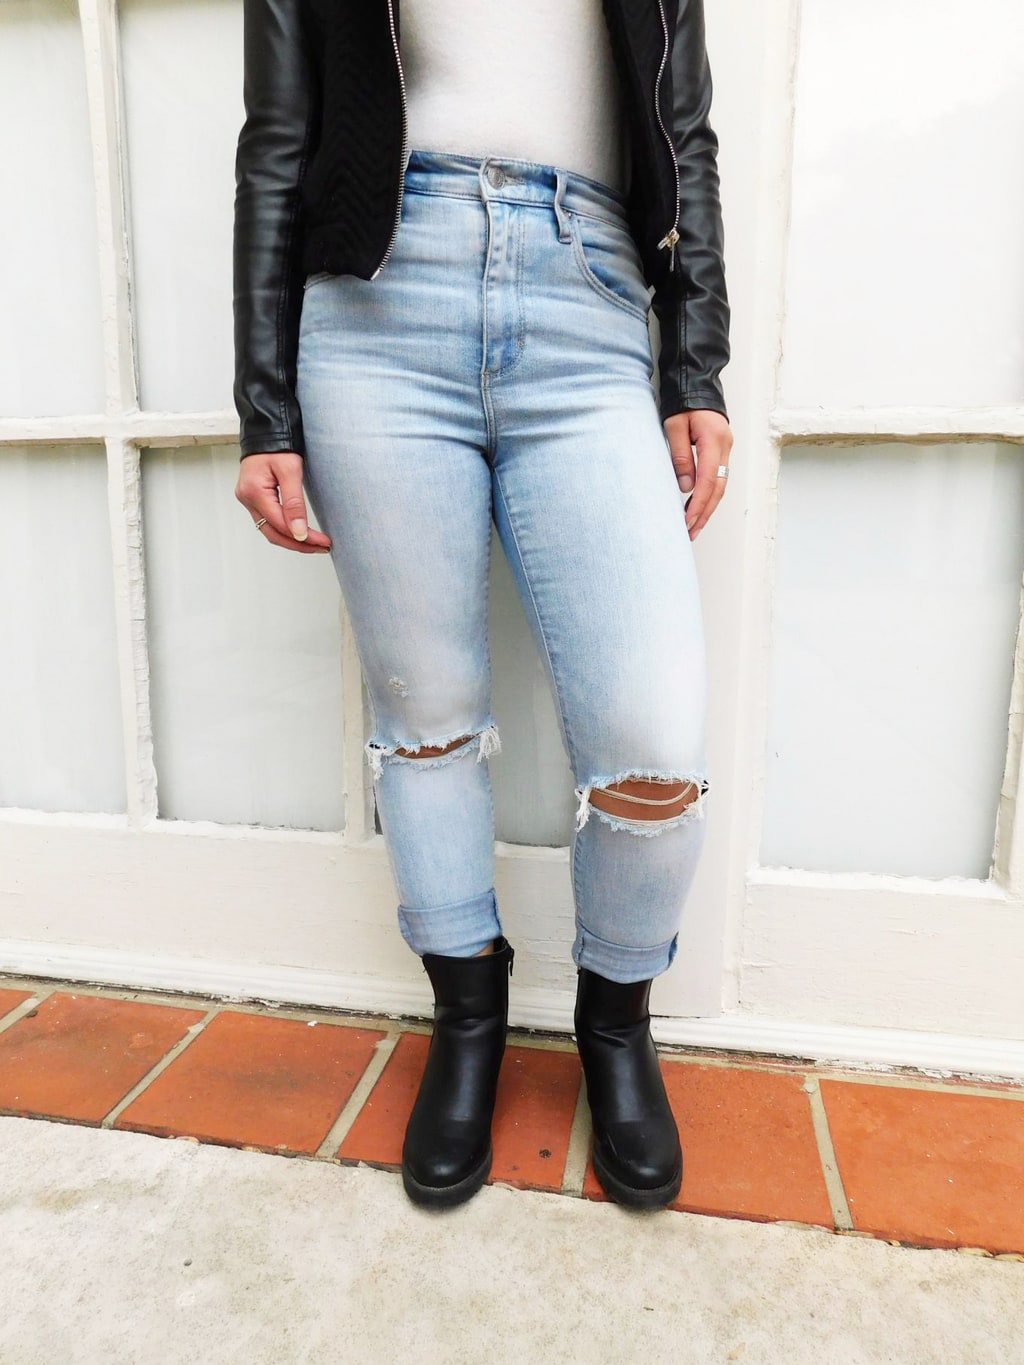 Fashion at Jefferson University: Jackie wears high-waisted, light-wash denim jeans with a white turtleneck tucked in. These jeans have distressed knees and are worn cuffed.